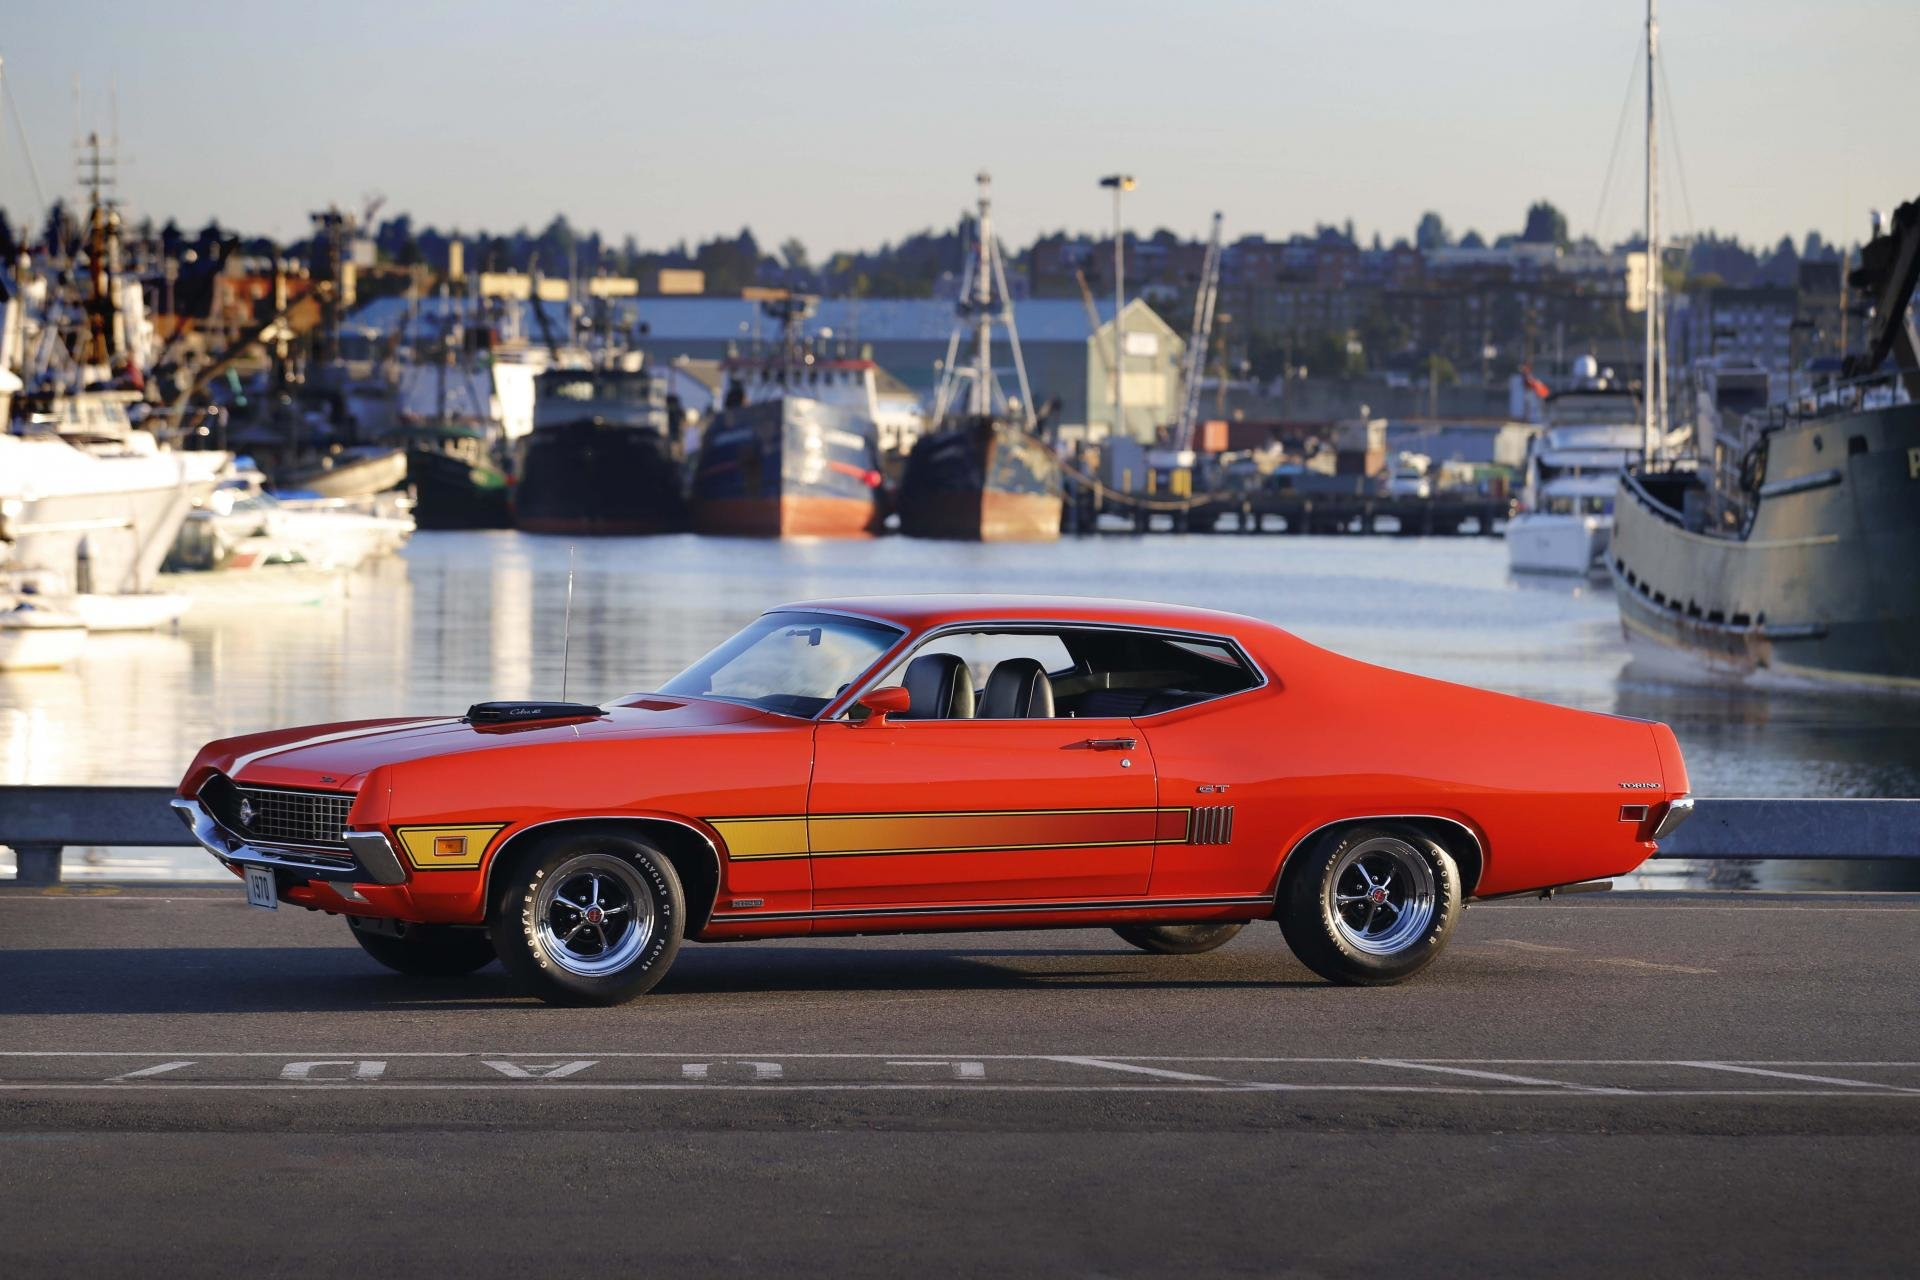 Ford Torino Wallpapers Hd For Desktop Backgrounds